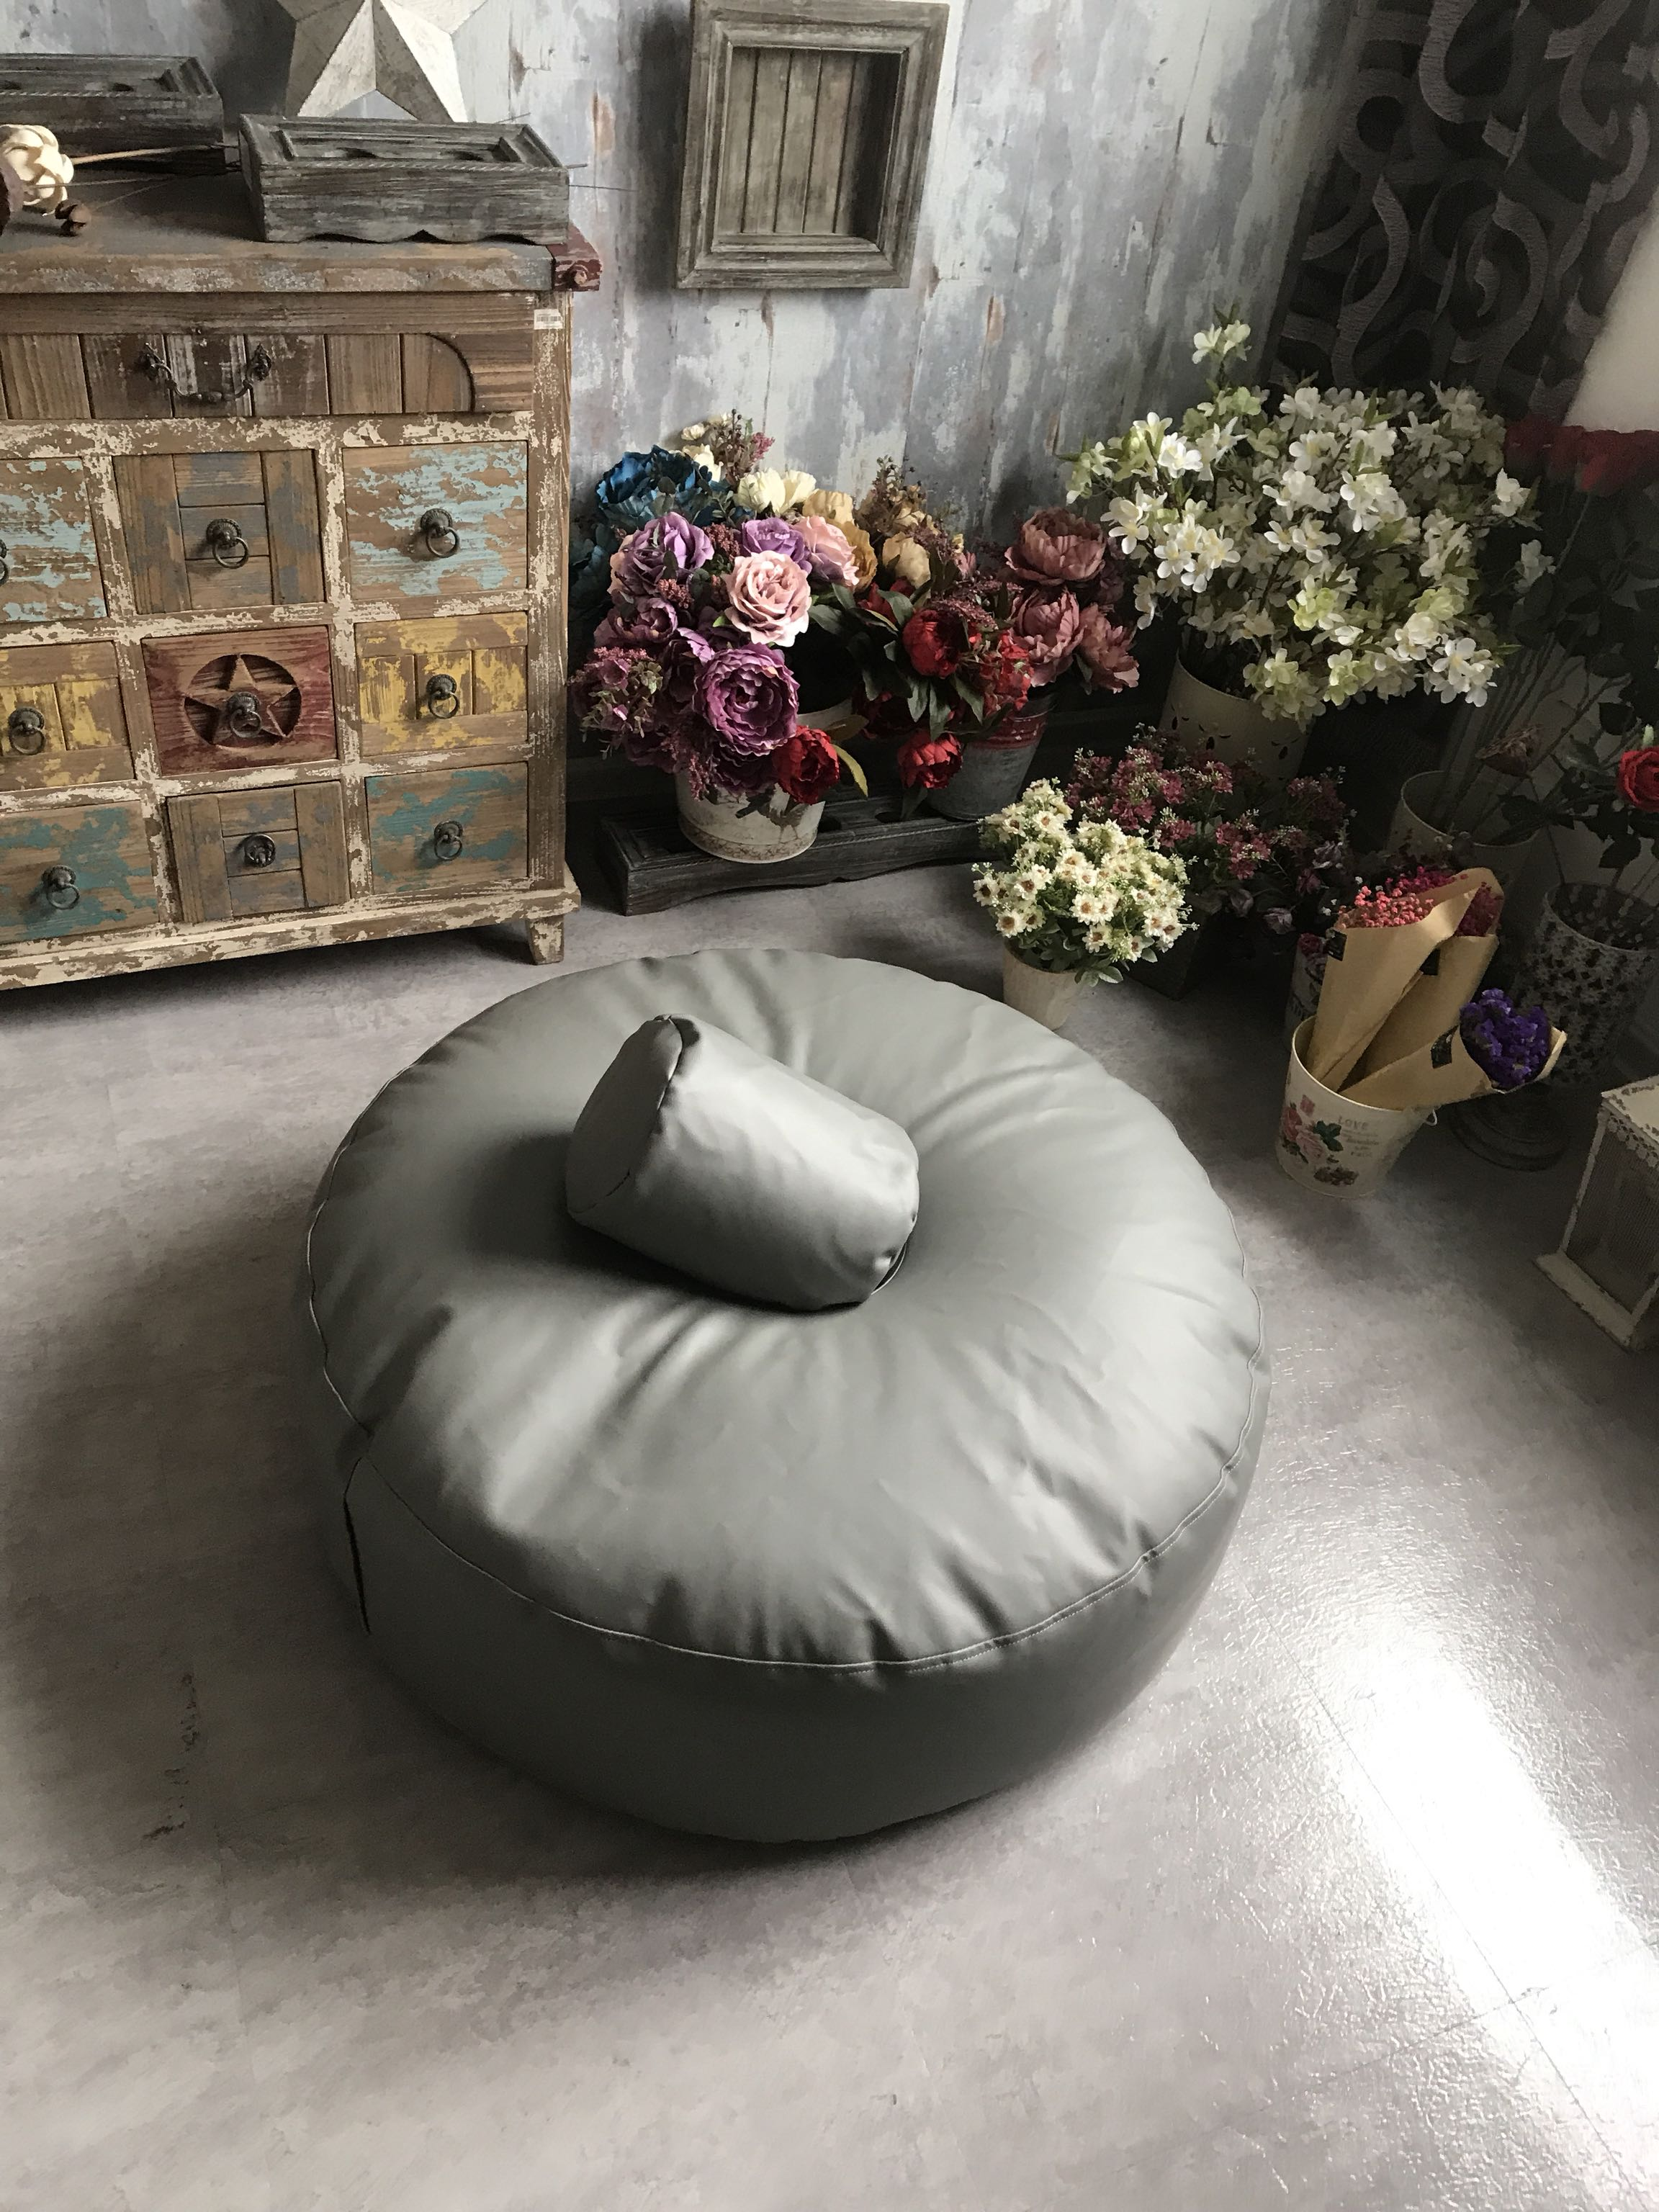 2018 Newborn Photography Studio POSING PILLOW Newborn Poser Ottoman Beanbag Photo Prop Infant Poser 85CM Big Size Rack Bean Bag